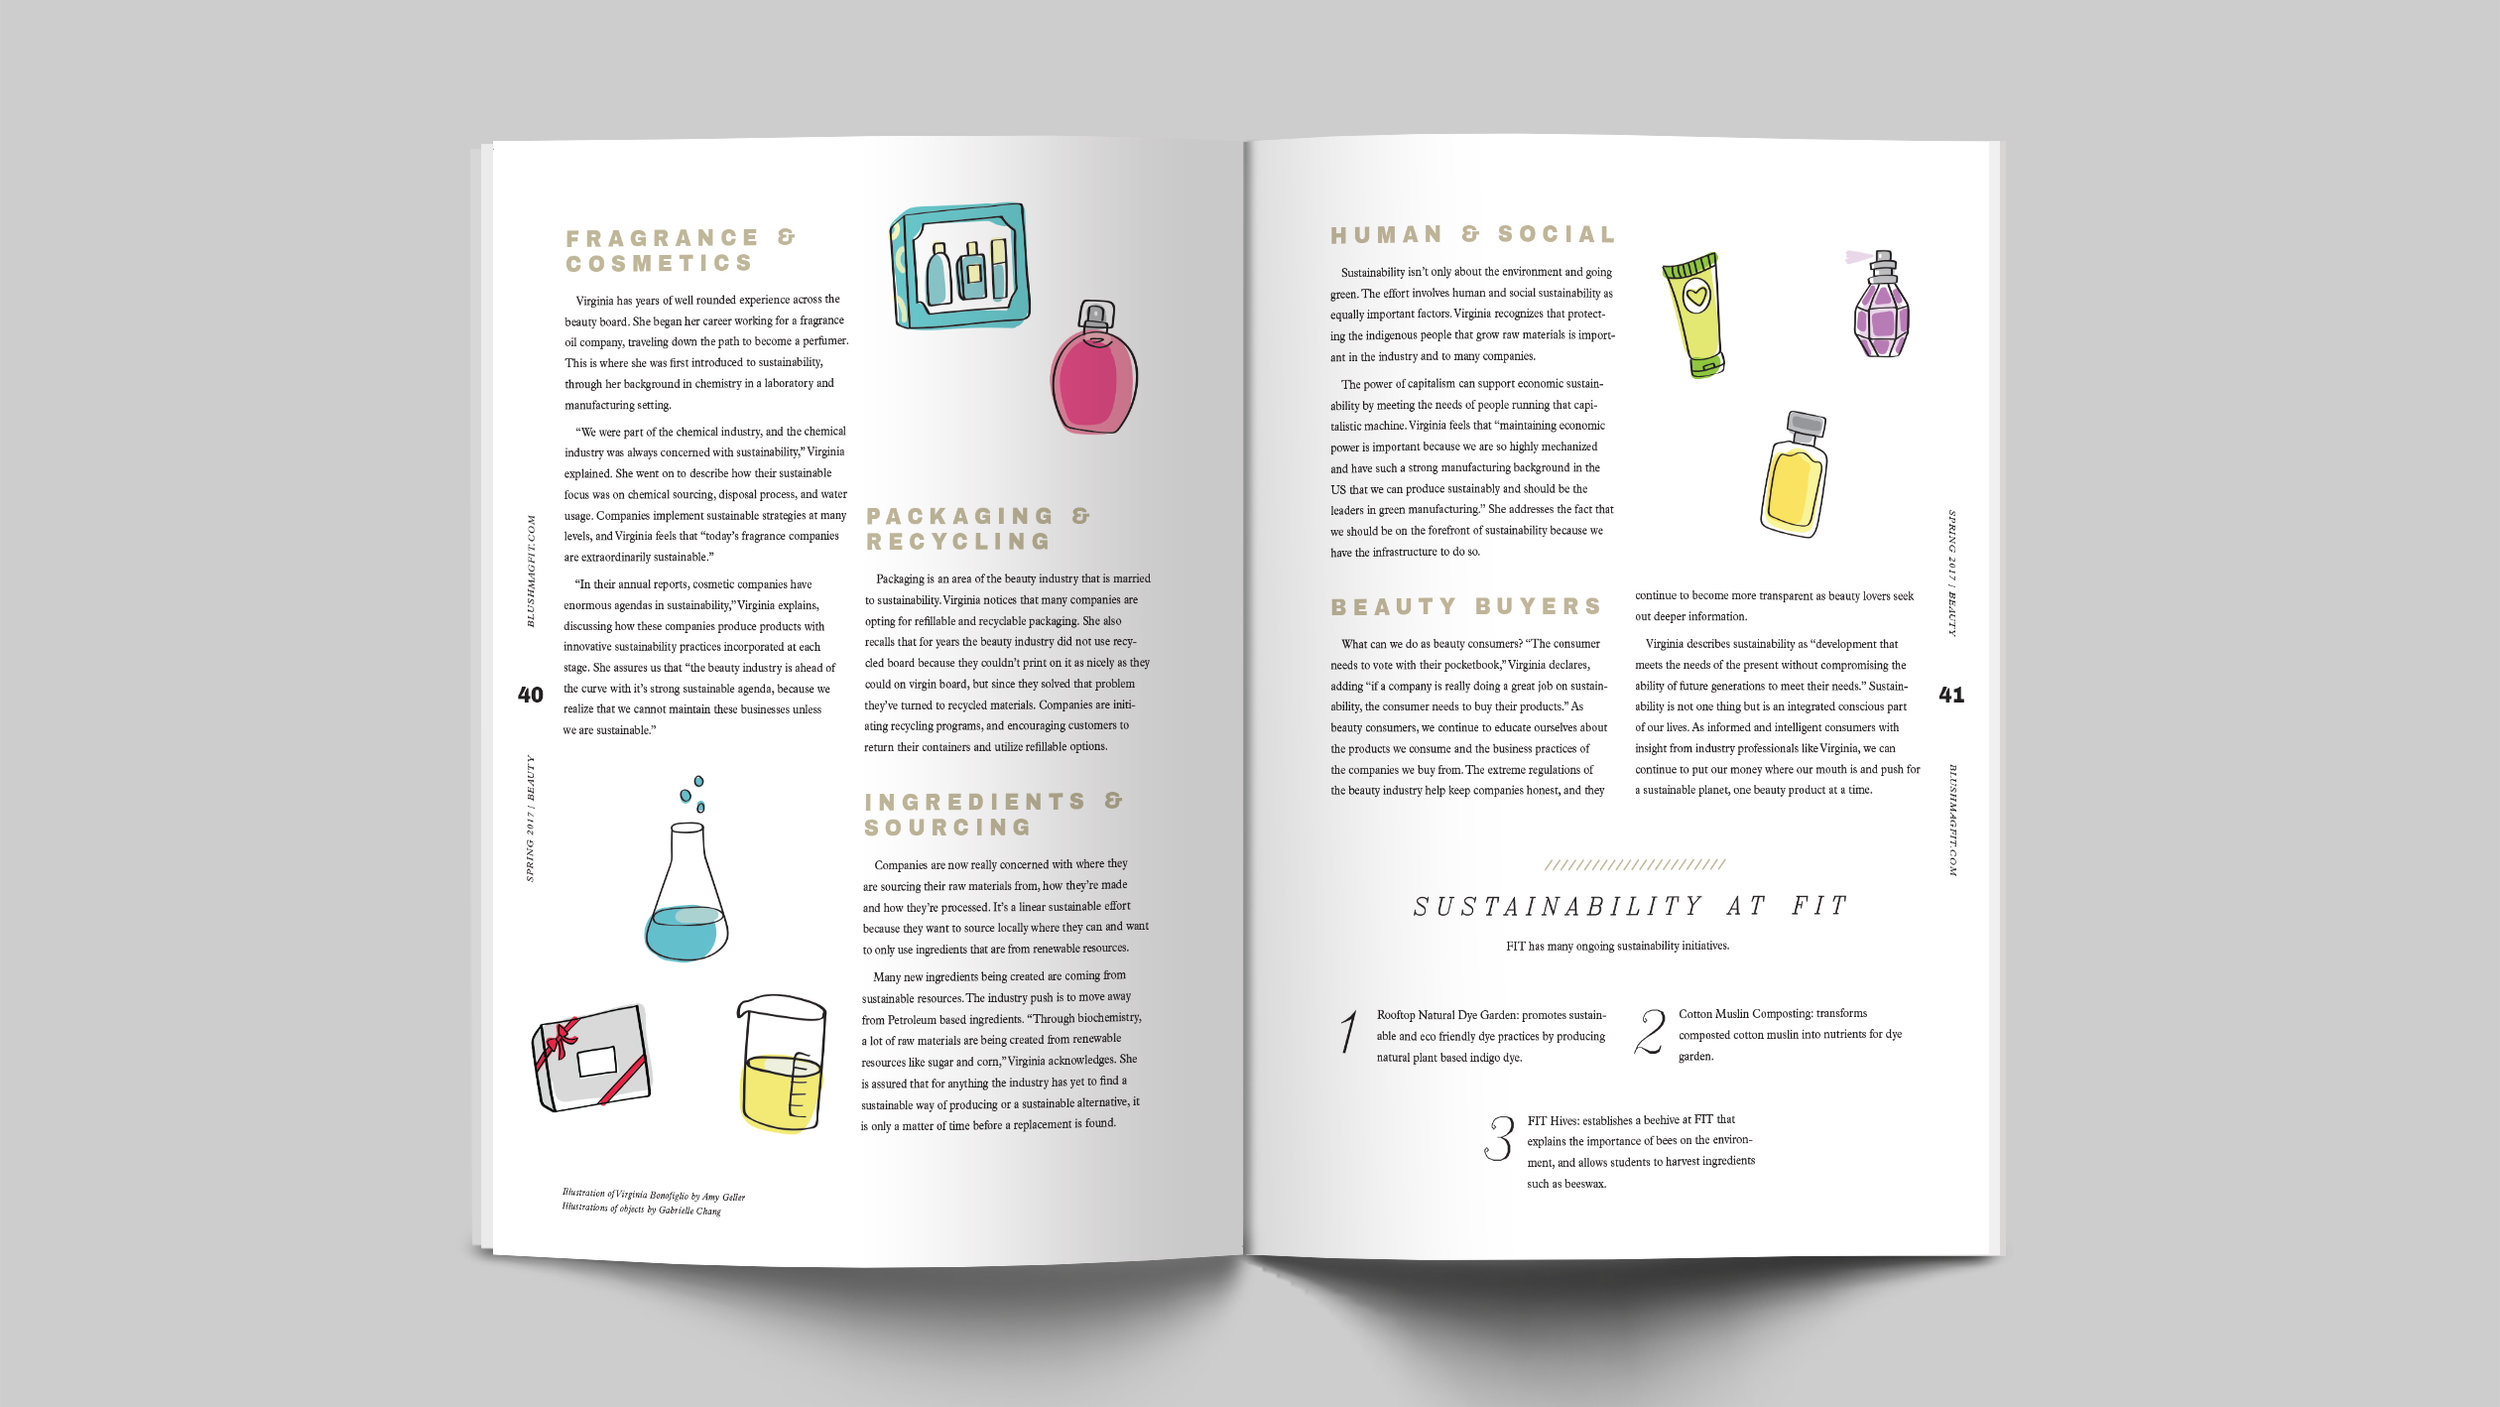 Illustration of objects: Gabrielle Chang